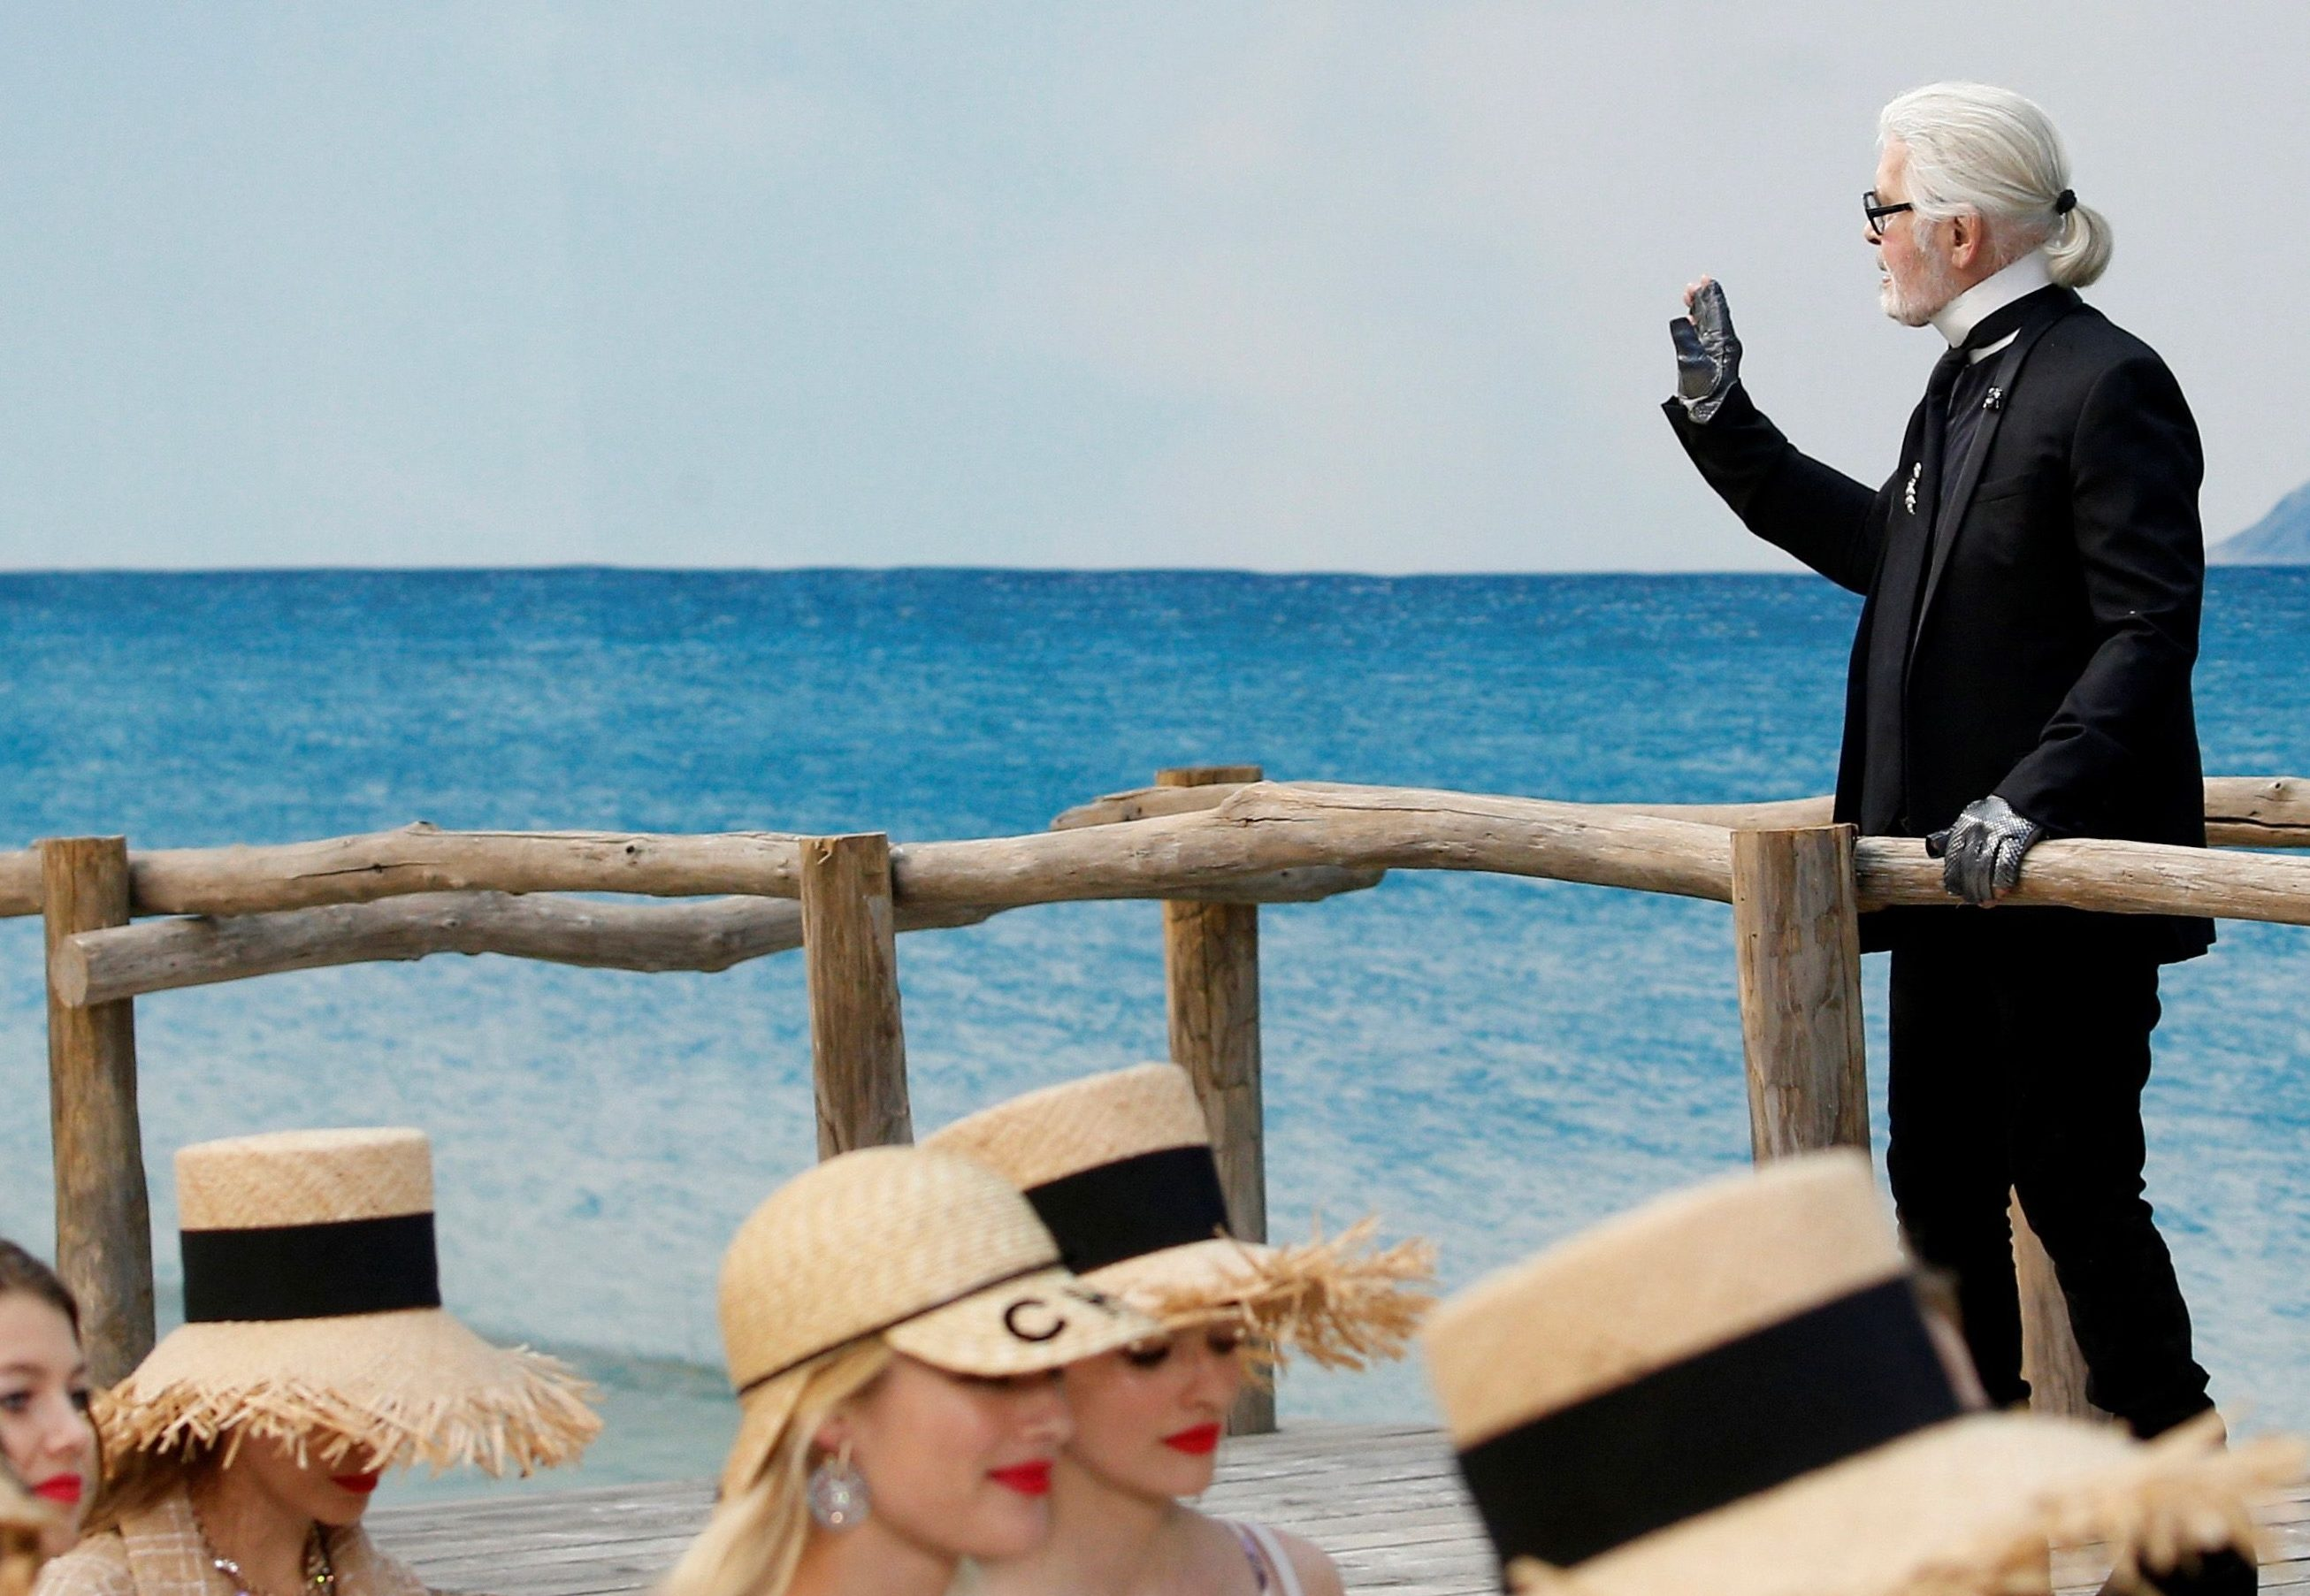 Karl Lagerfeld's timeless advice on life and youth